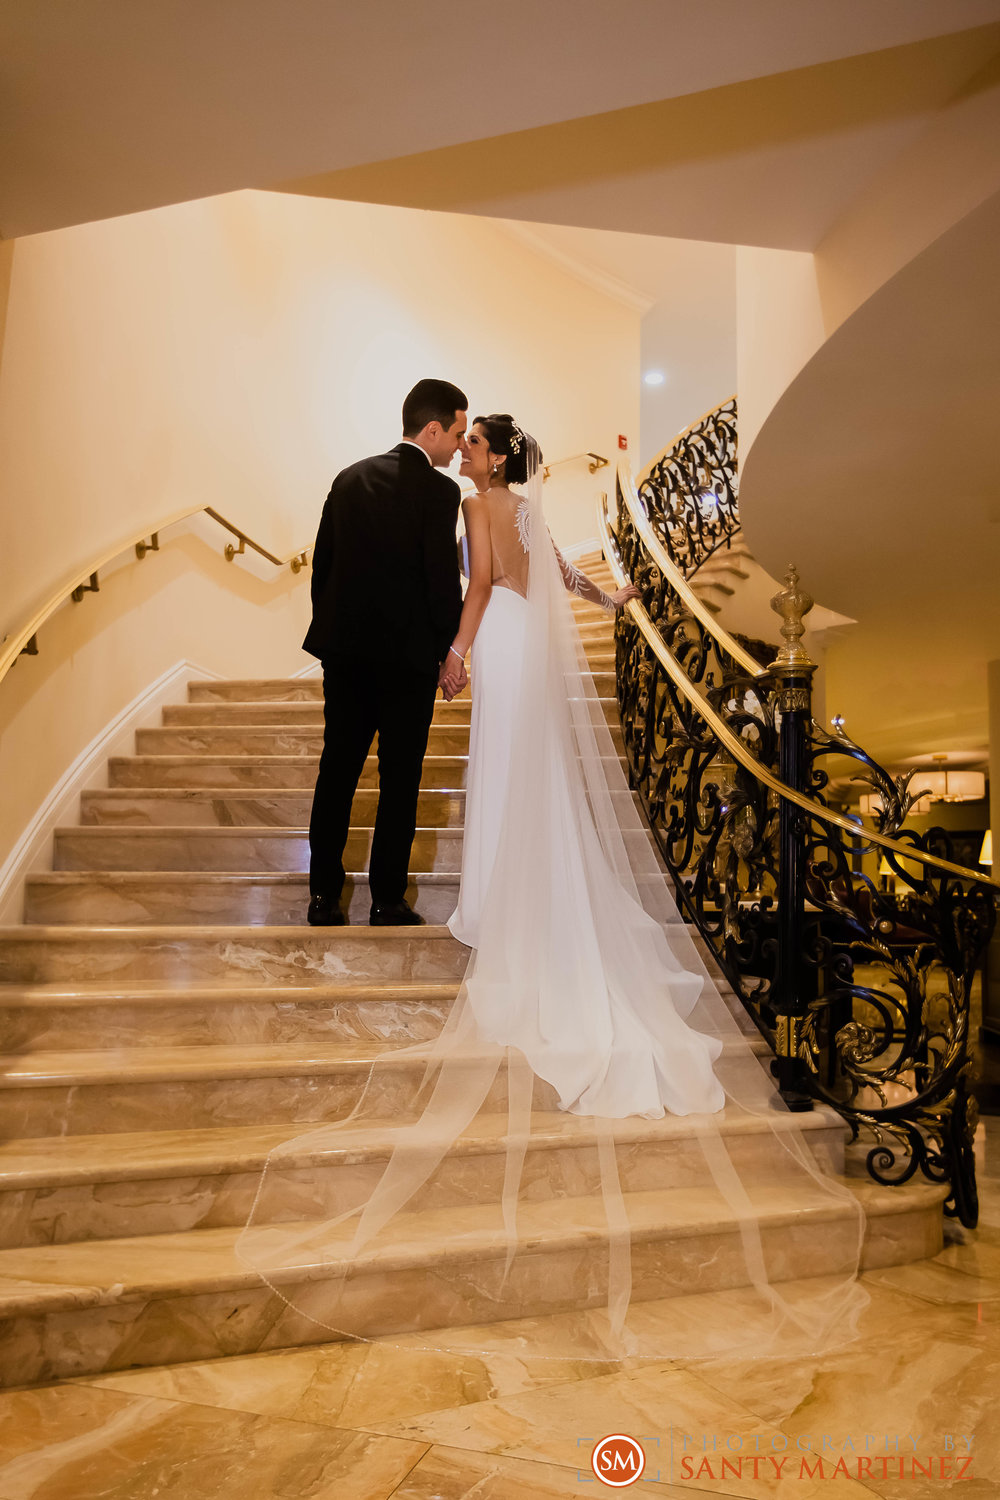 Wedding Trump National Doral Miami - Photography by Santy Martinez-22.jpg